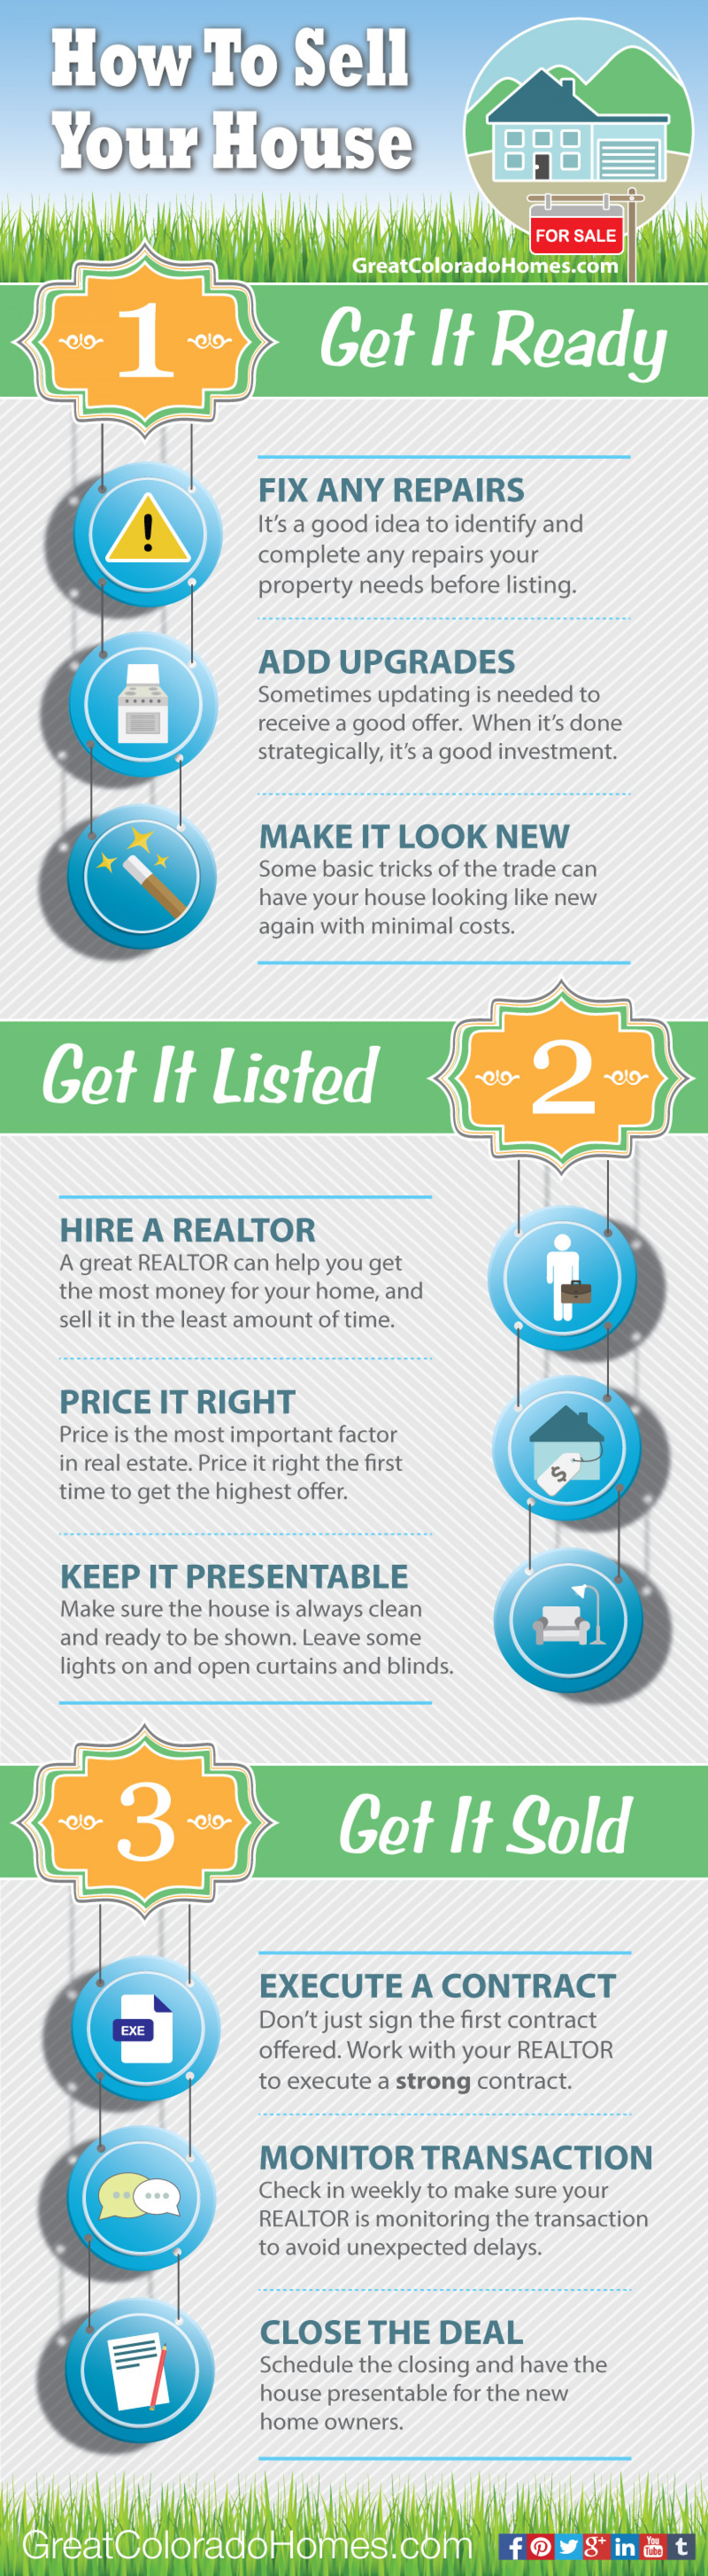 How To Sell Your House Infographic